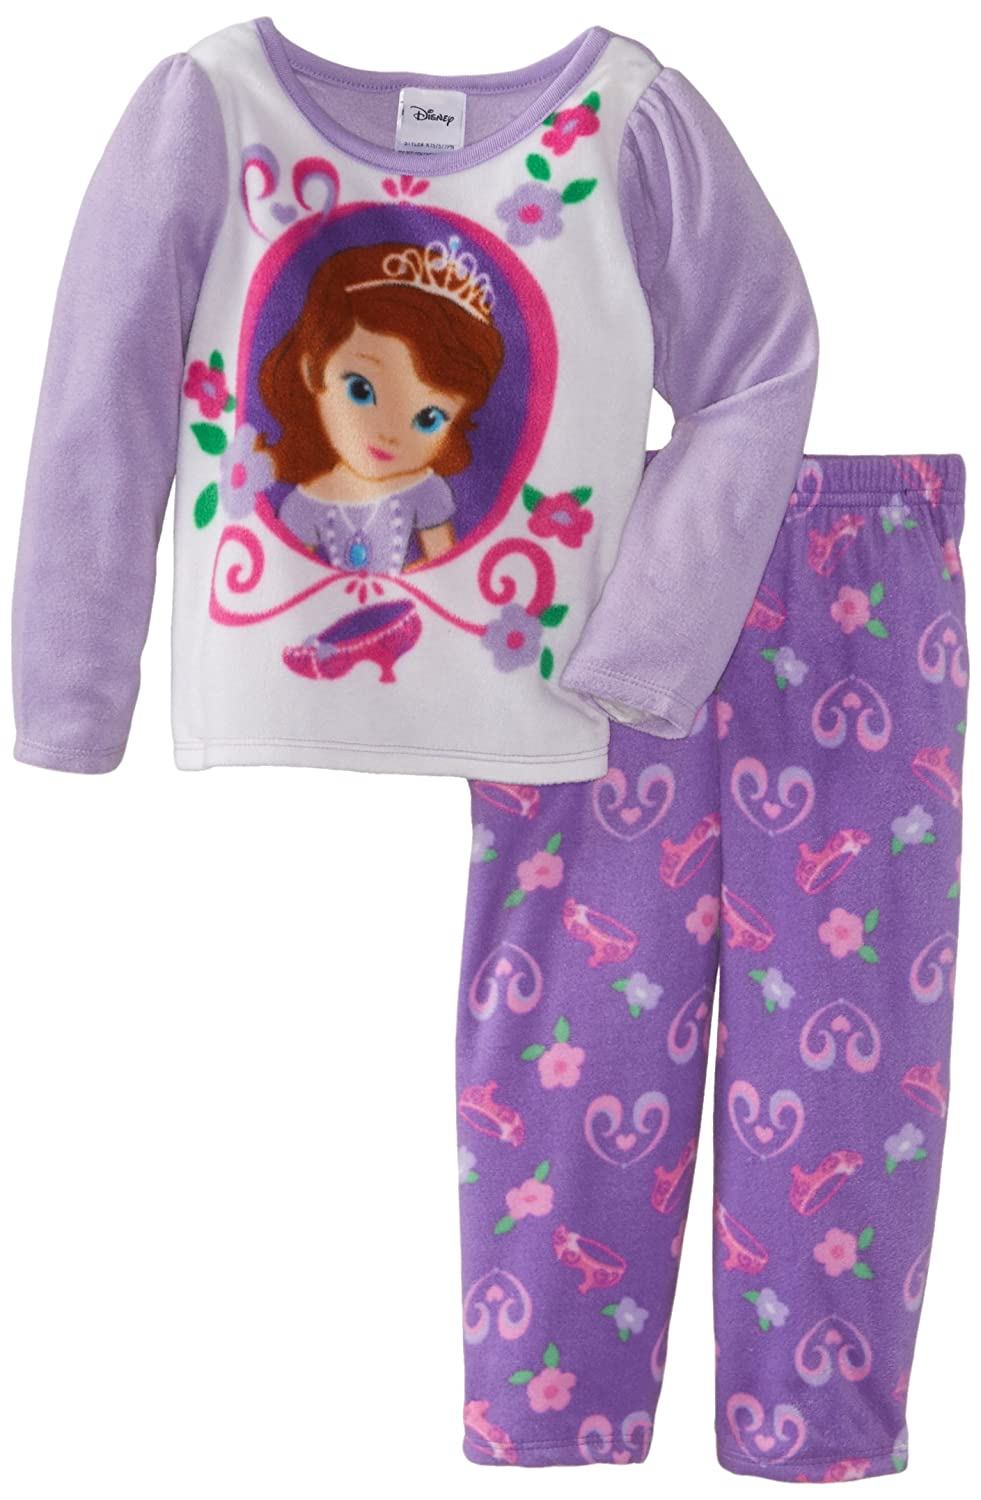 Sofia the First Girl's 2-6X Toddler Princess Sofia Fleece Pajama Set игровой набор disney sofia the first дворец bdk61